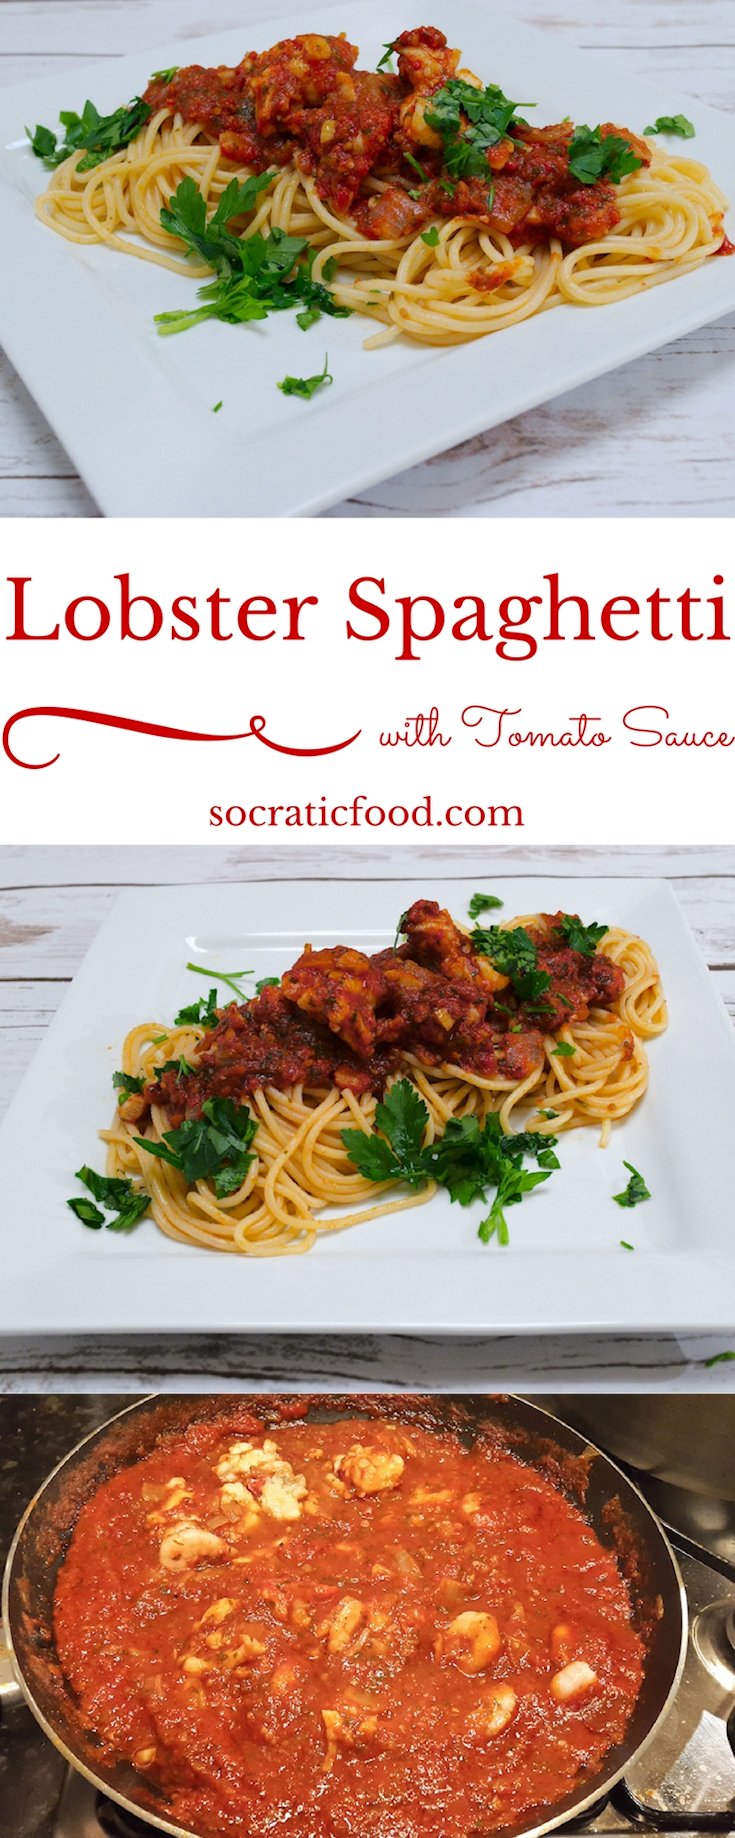 Maine Lobster Spaghetti with Fresh Tomato Sauce